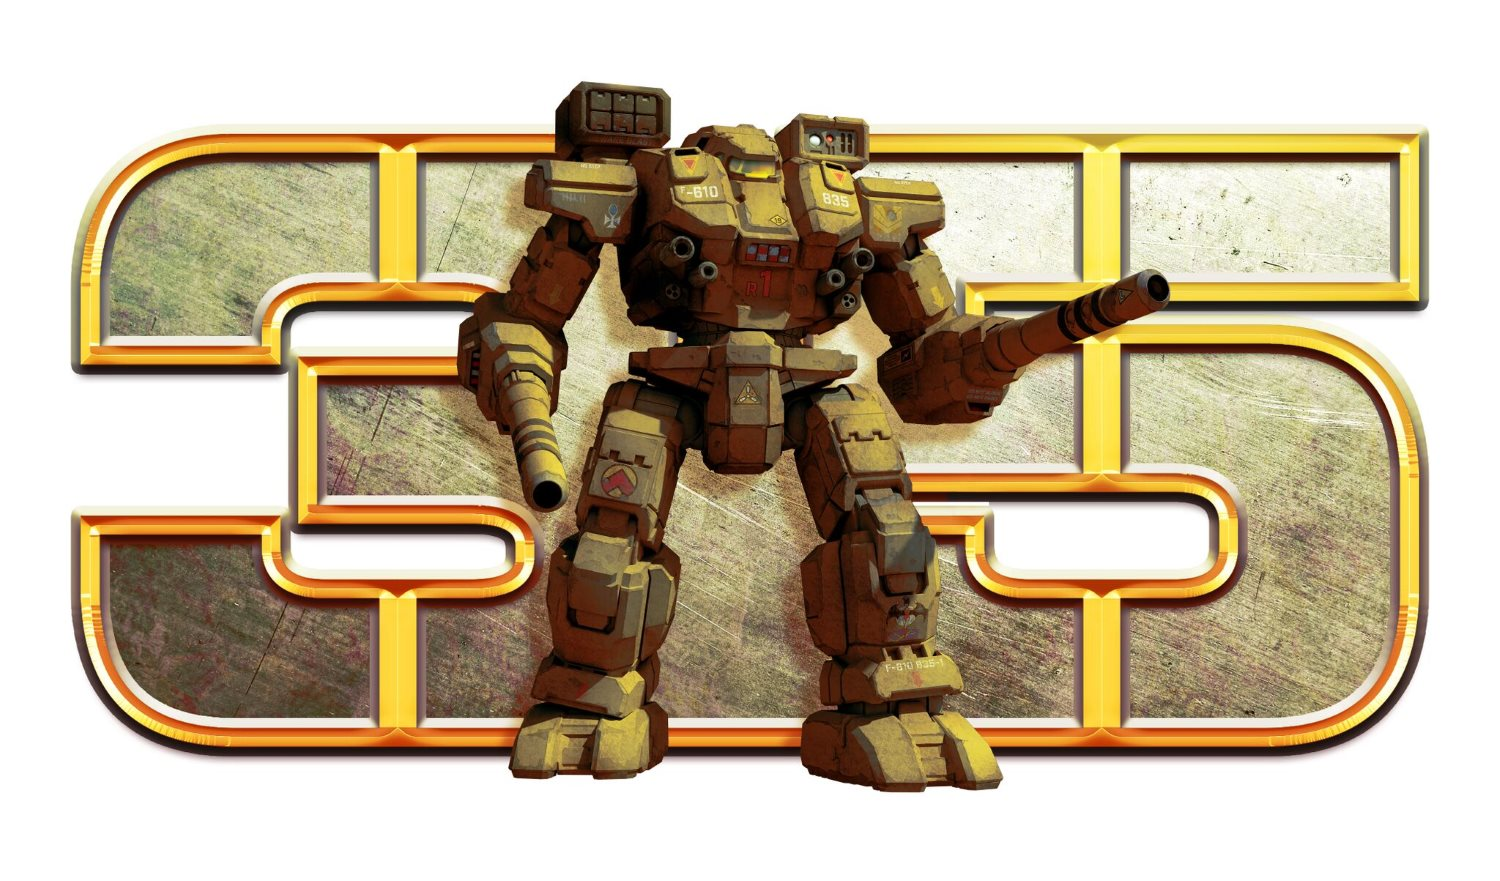 Sarna.net News: Catalyst Announces 35th Anniversary BattleTech with New Products Available